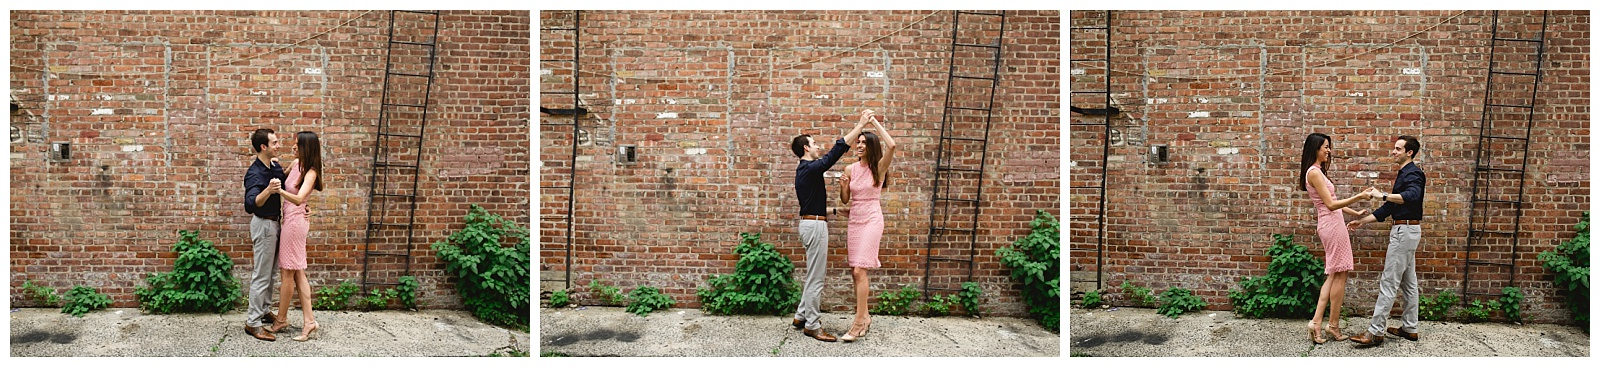 new jersey wedding photographer new jersey wedding photography hoboken engagement photography hoboken engagement